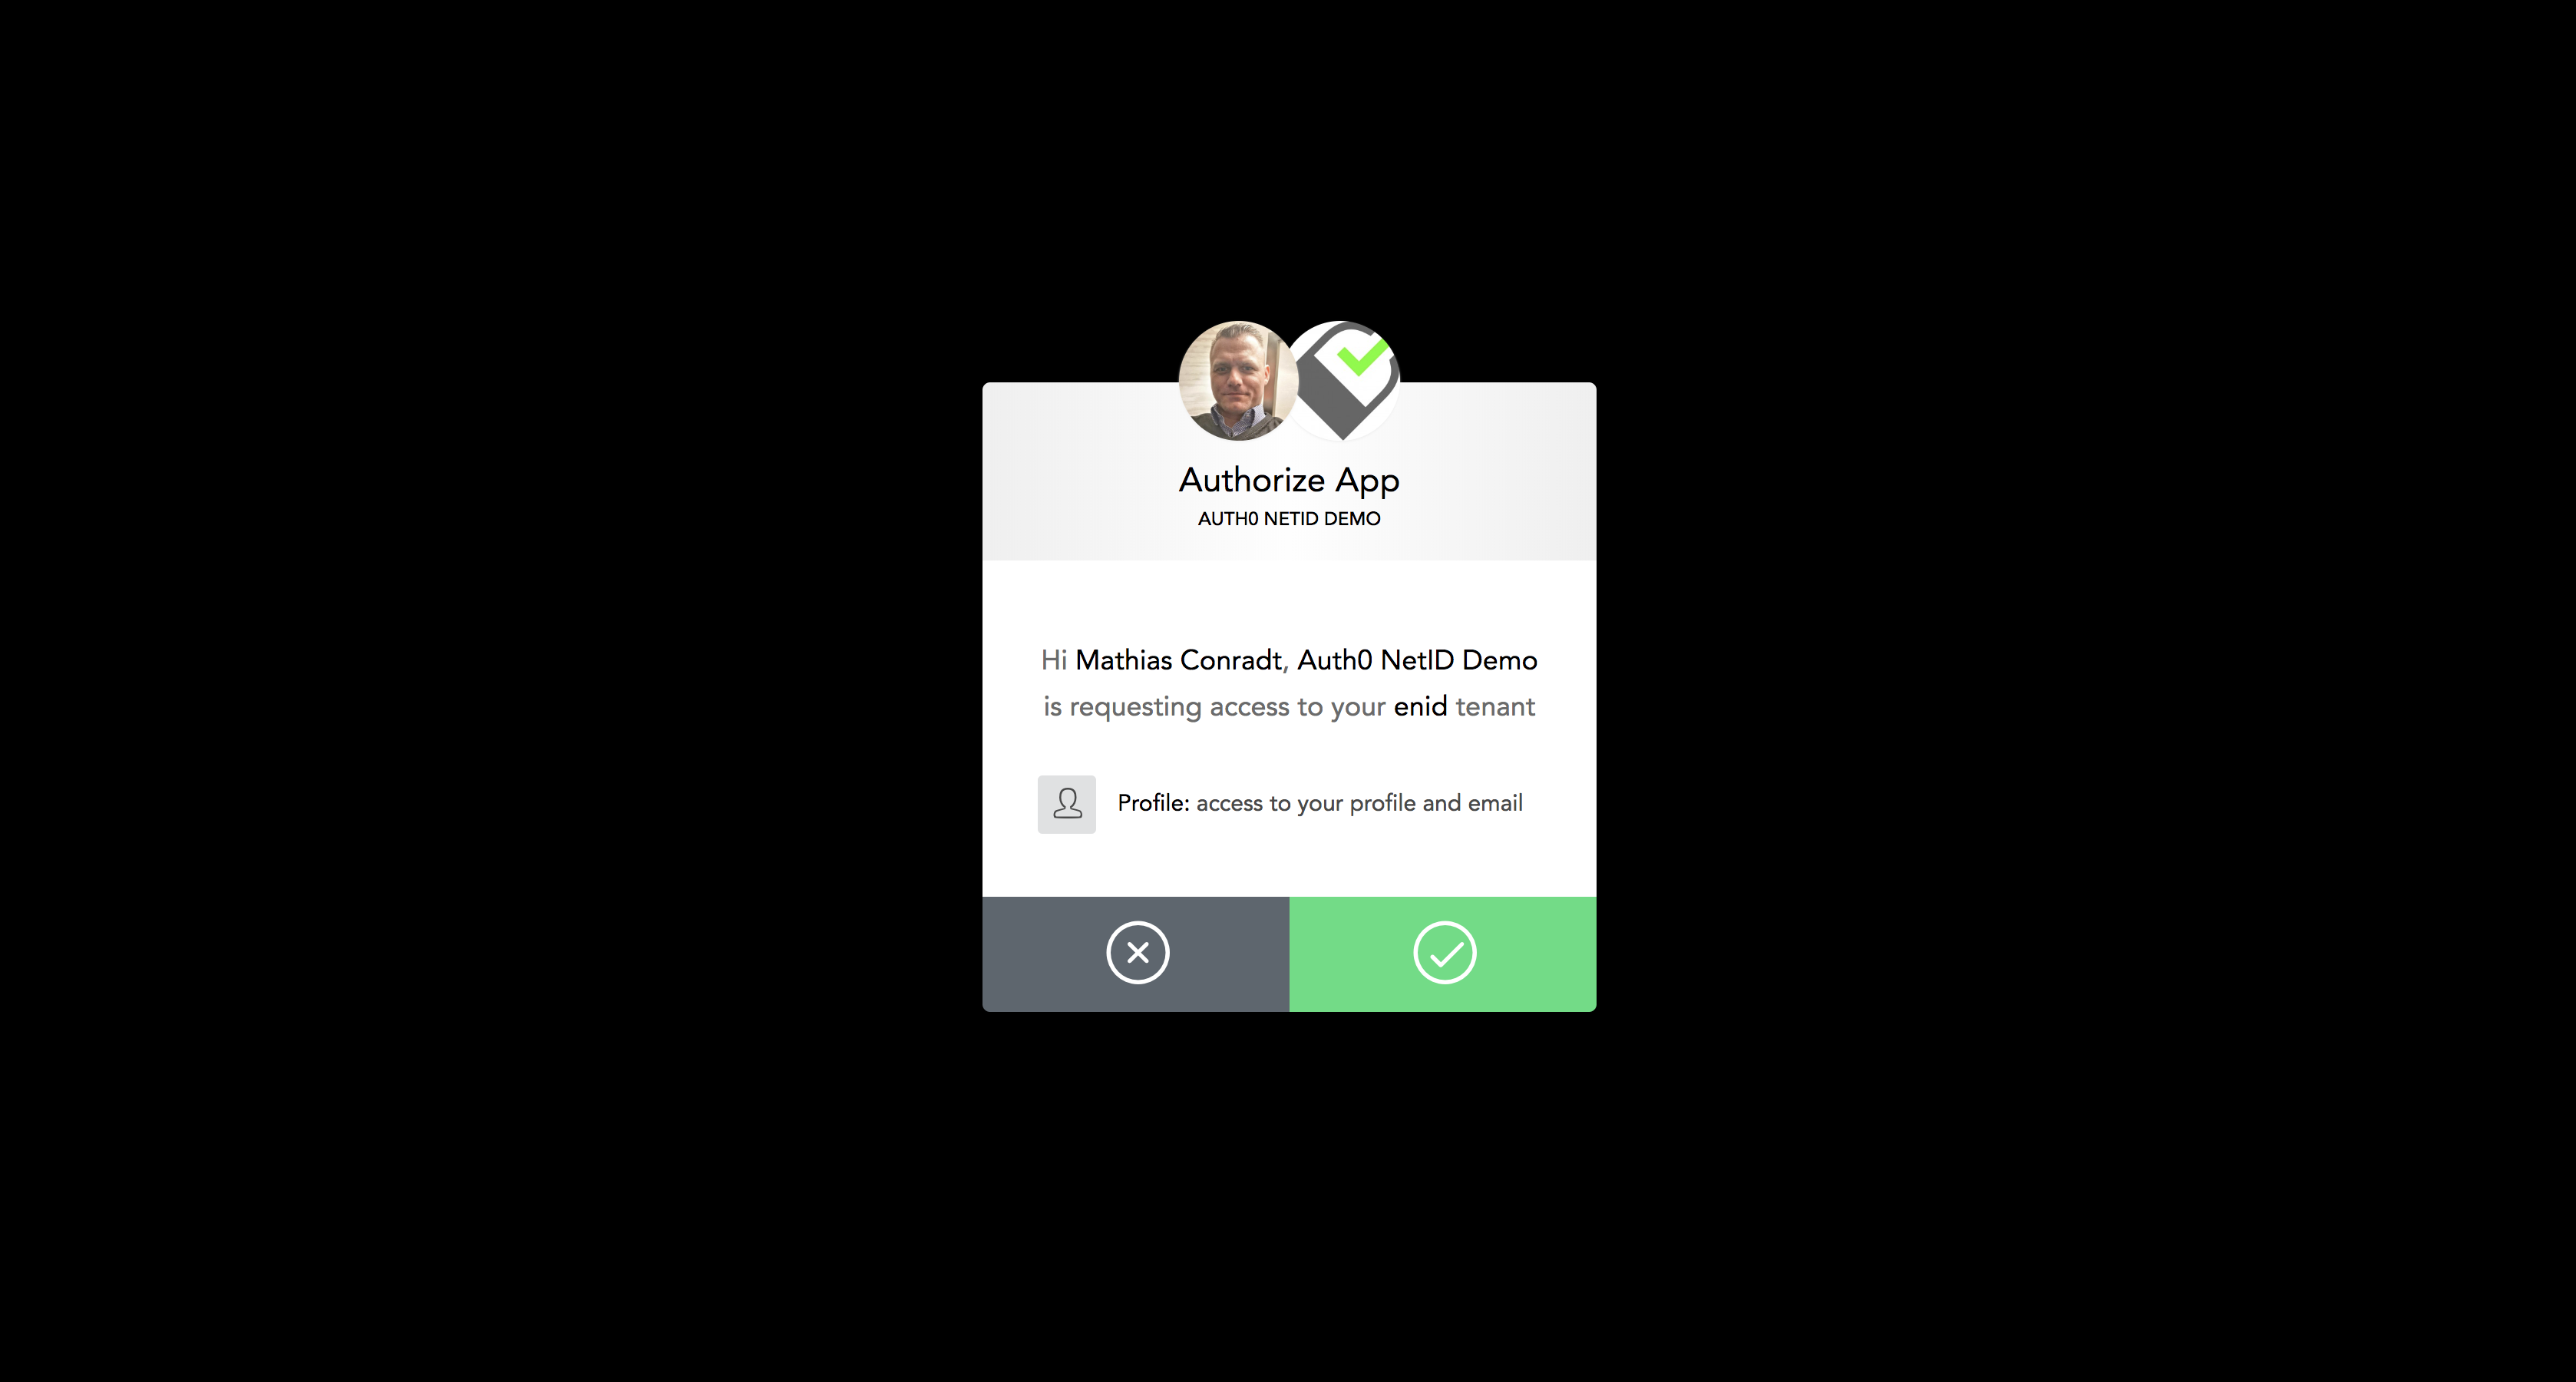 The Auth0 consent screen